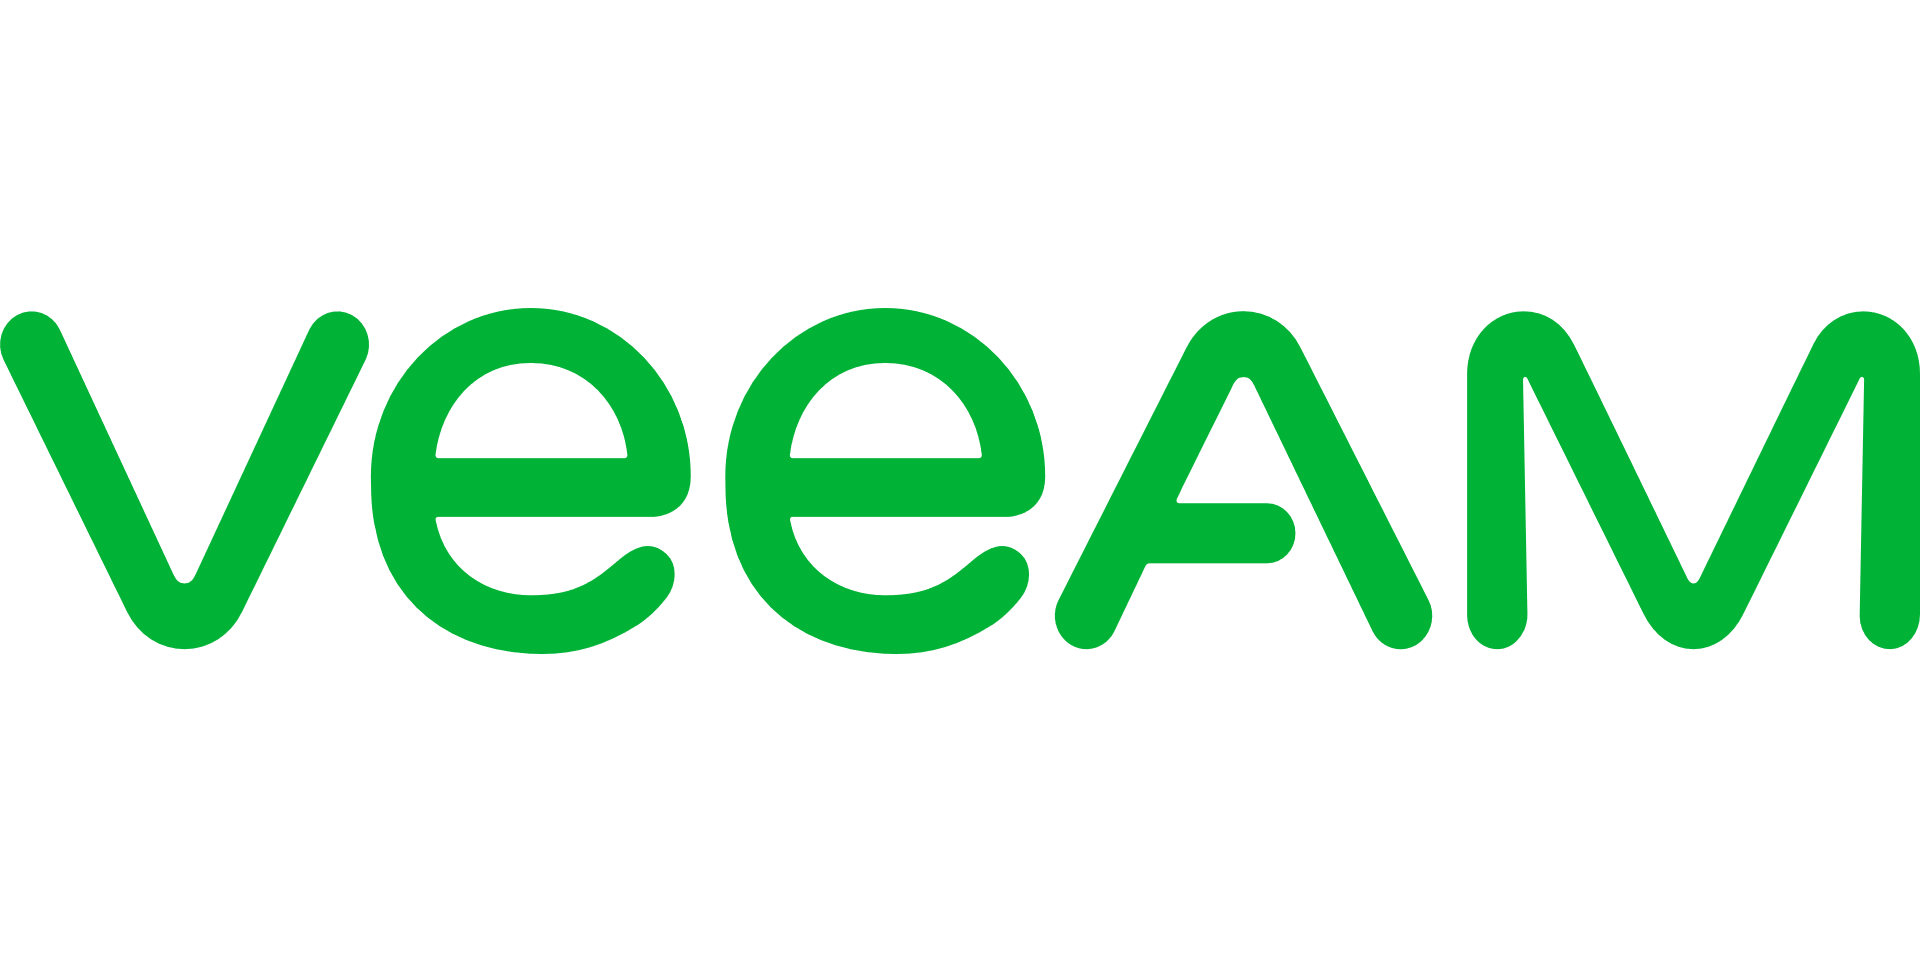 veeam_green_logo (1).png